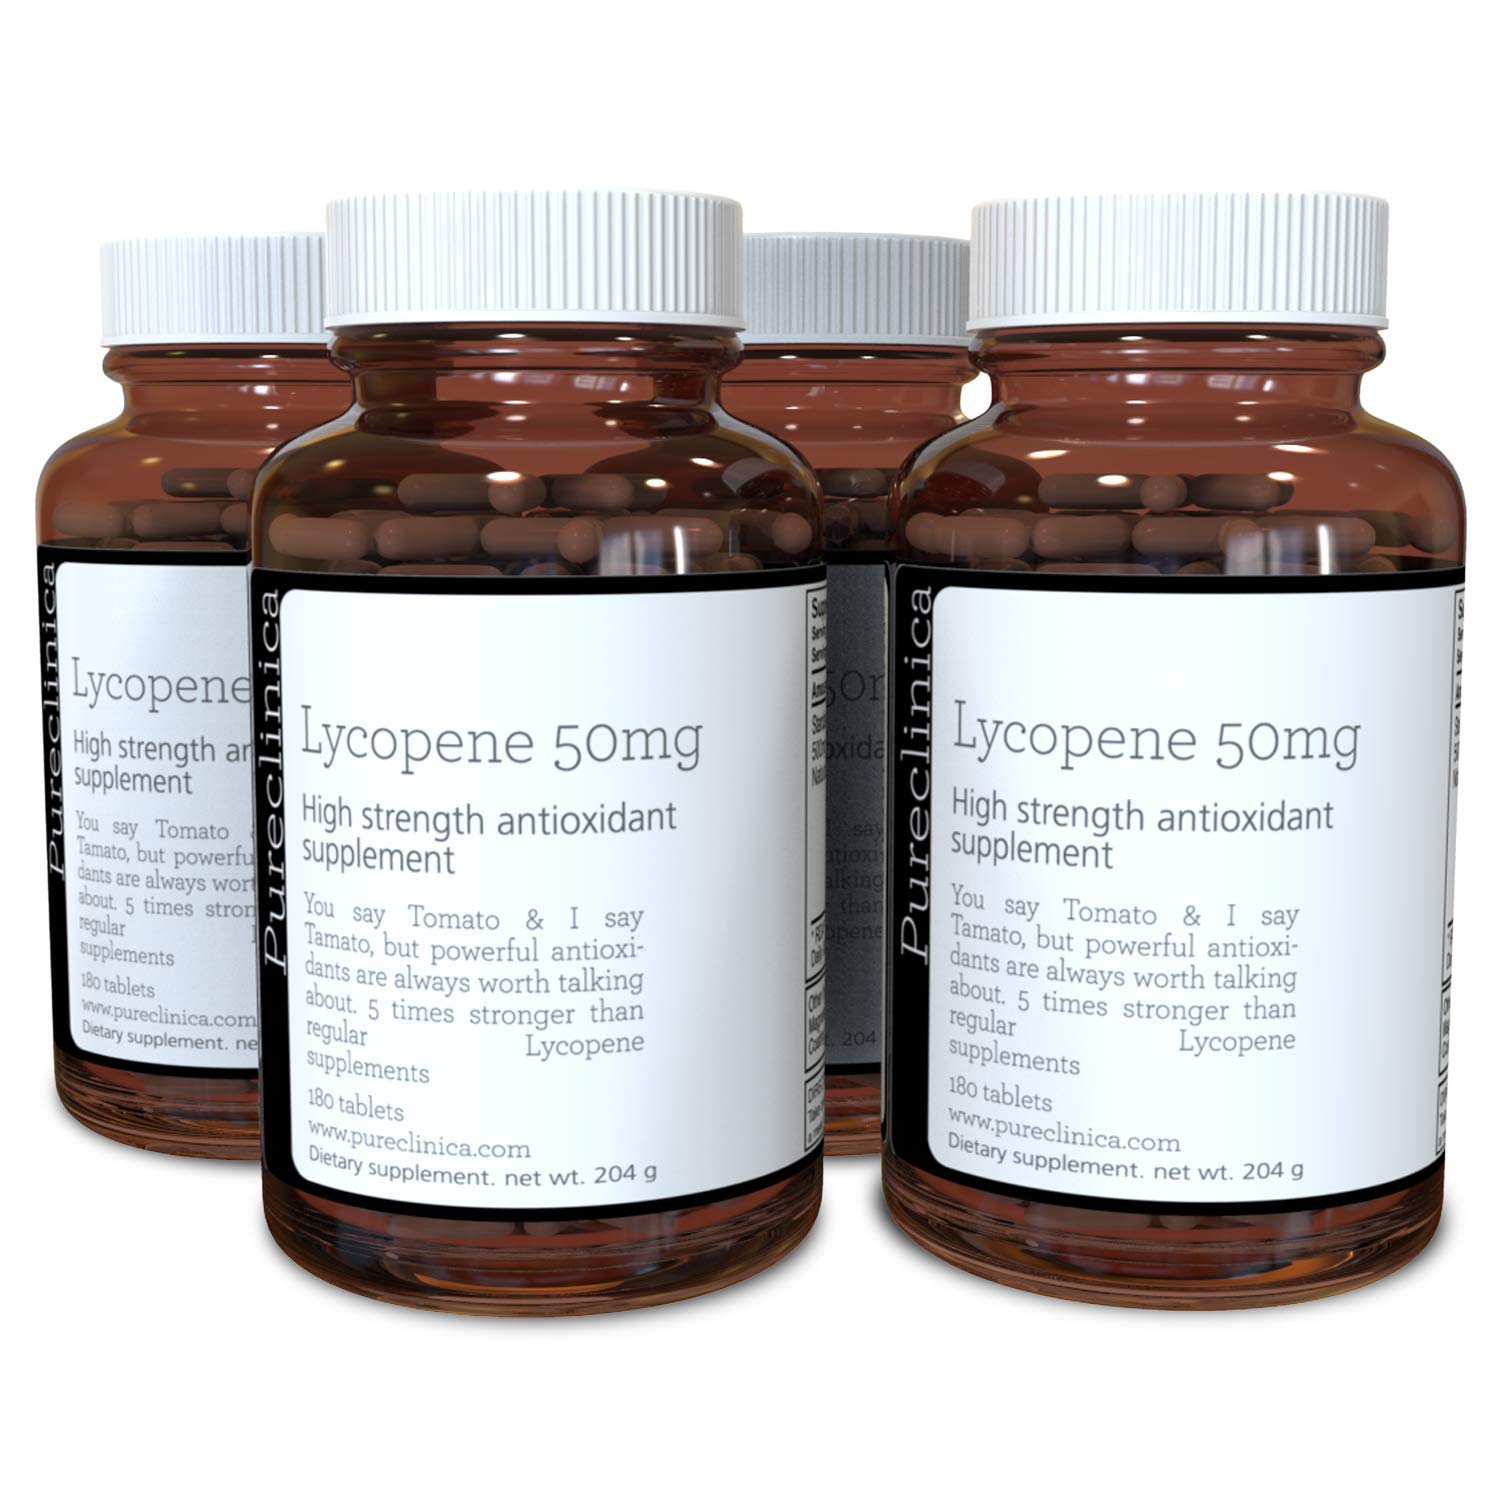 Lycopene 50mg x 720 Tablets (4 Bottles Each with 180 Tablets). 300% Strength of Regular Lycopene Tablets. LY3x4